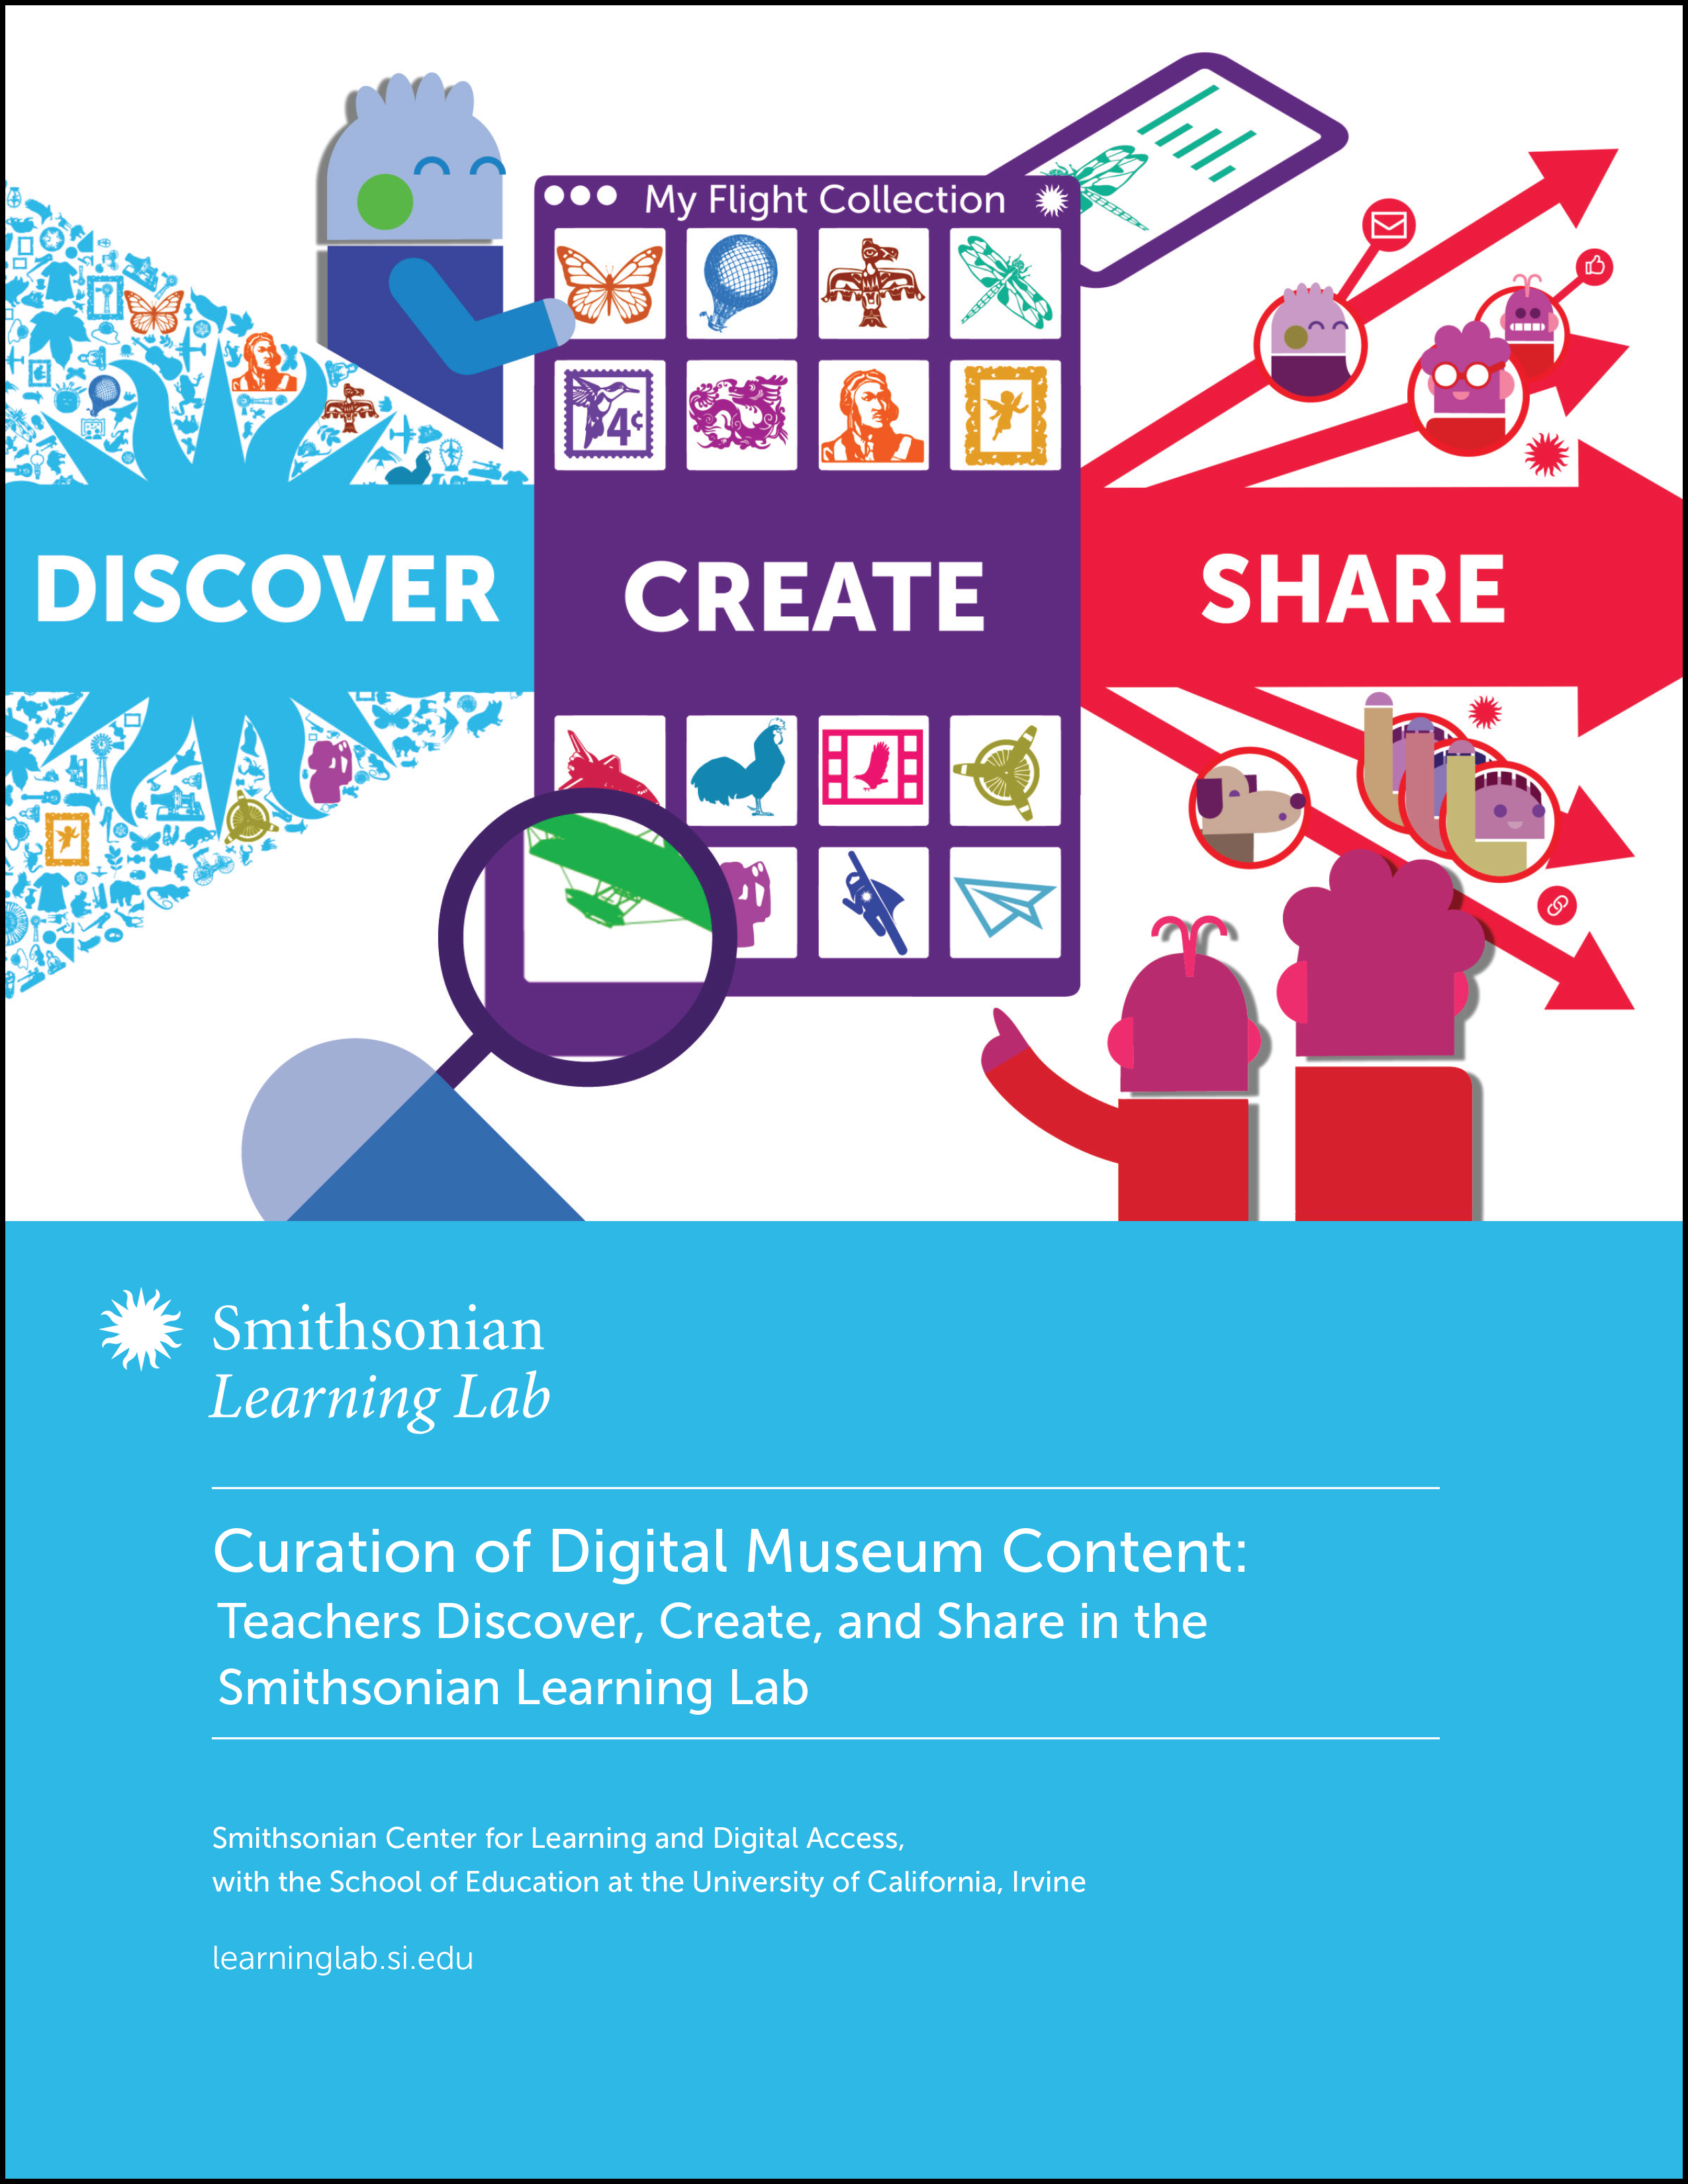 This article summarizes findings from the research report, Curation of Digital Museum Content: Teachers Discover, Create, and Share in the Smithsonian Learning Lab, which was supported by the Carnegie Corporation of New York. The full report can be downloaded from the Smithsonian Learning Lab research page.